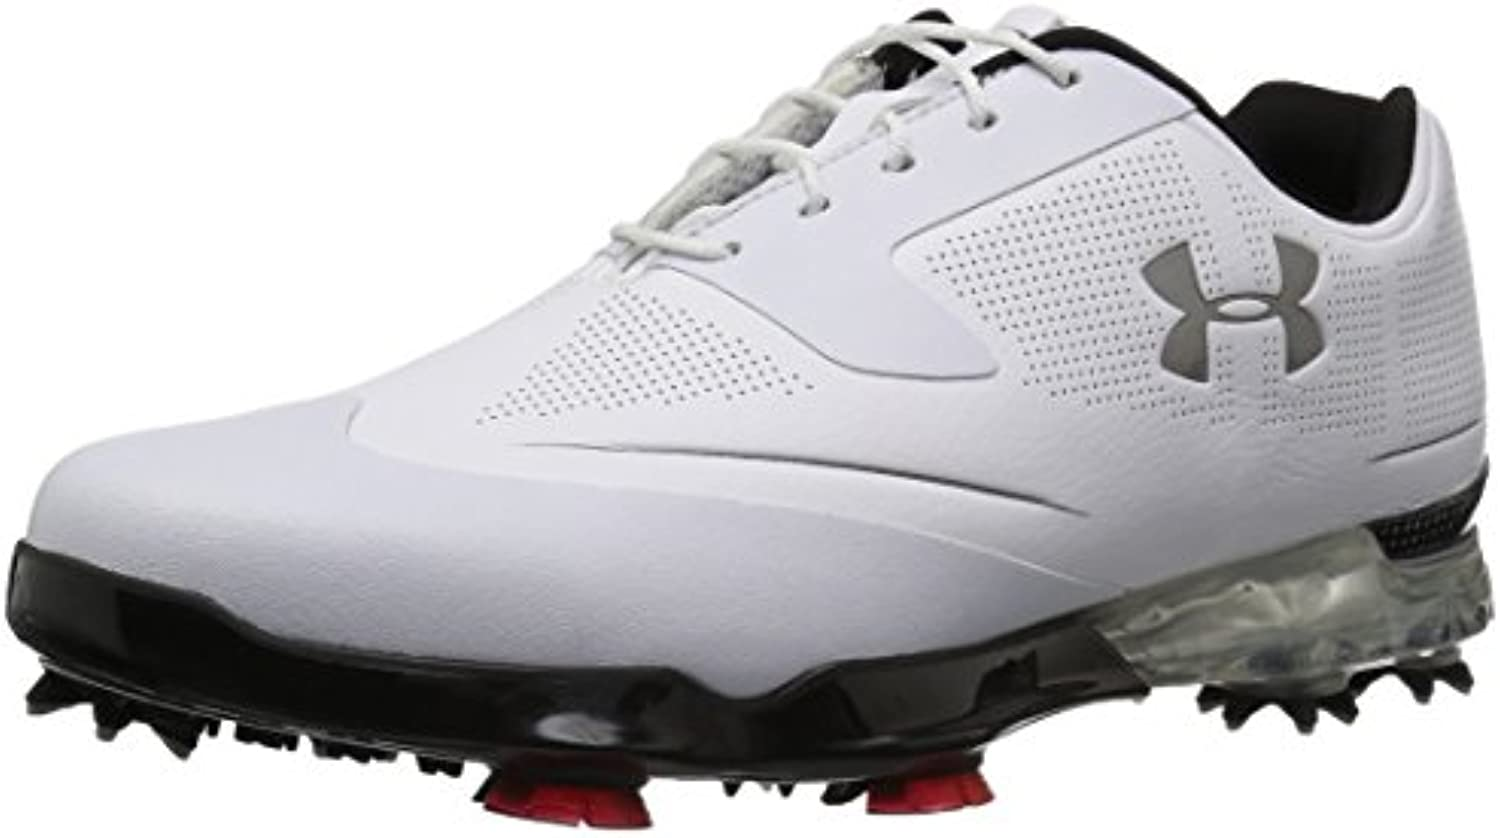 Under Armour 2017 UA Tour Tips Waterproof Mens Spikes Golf Shoes   Leather White/Black 11UK